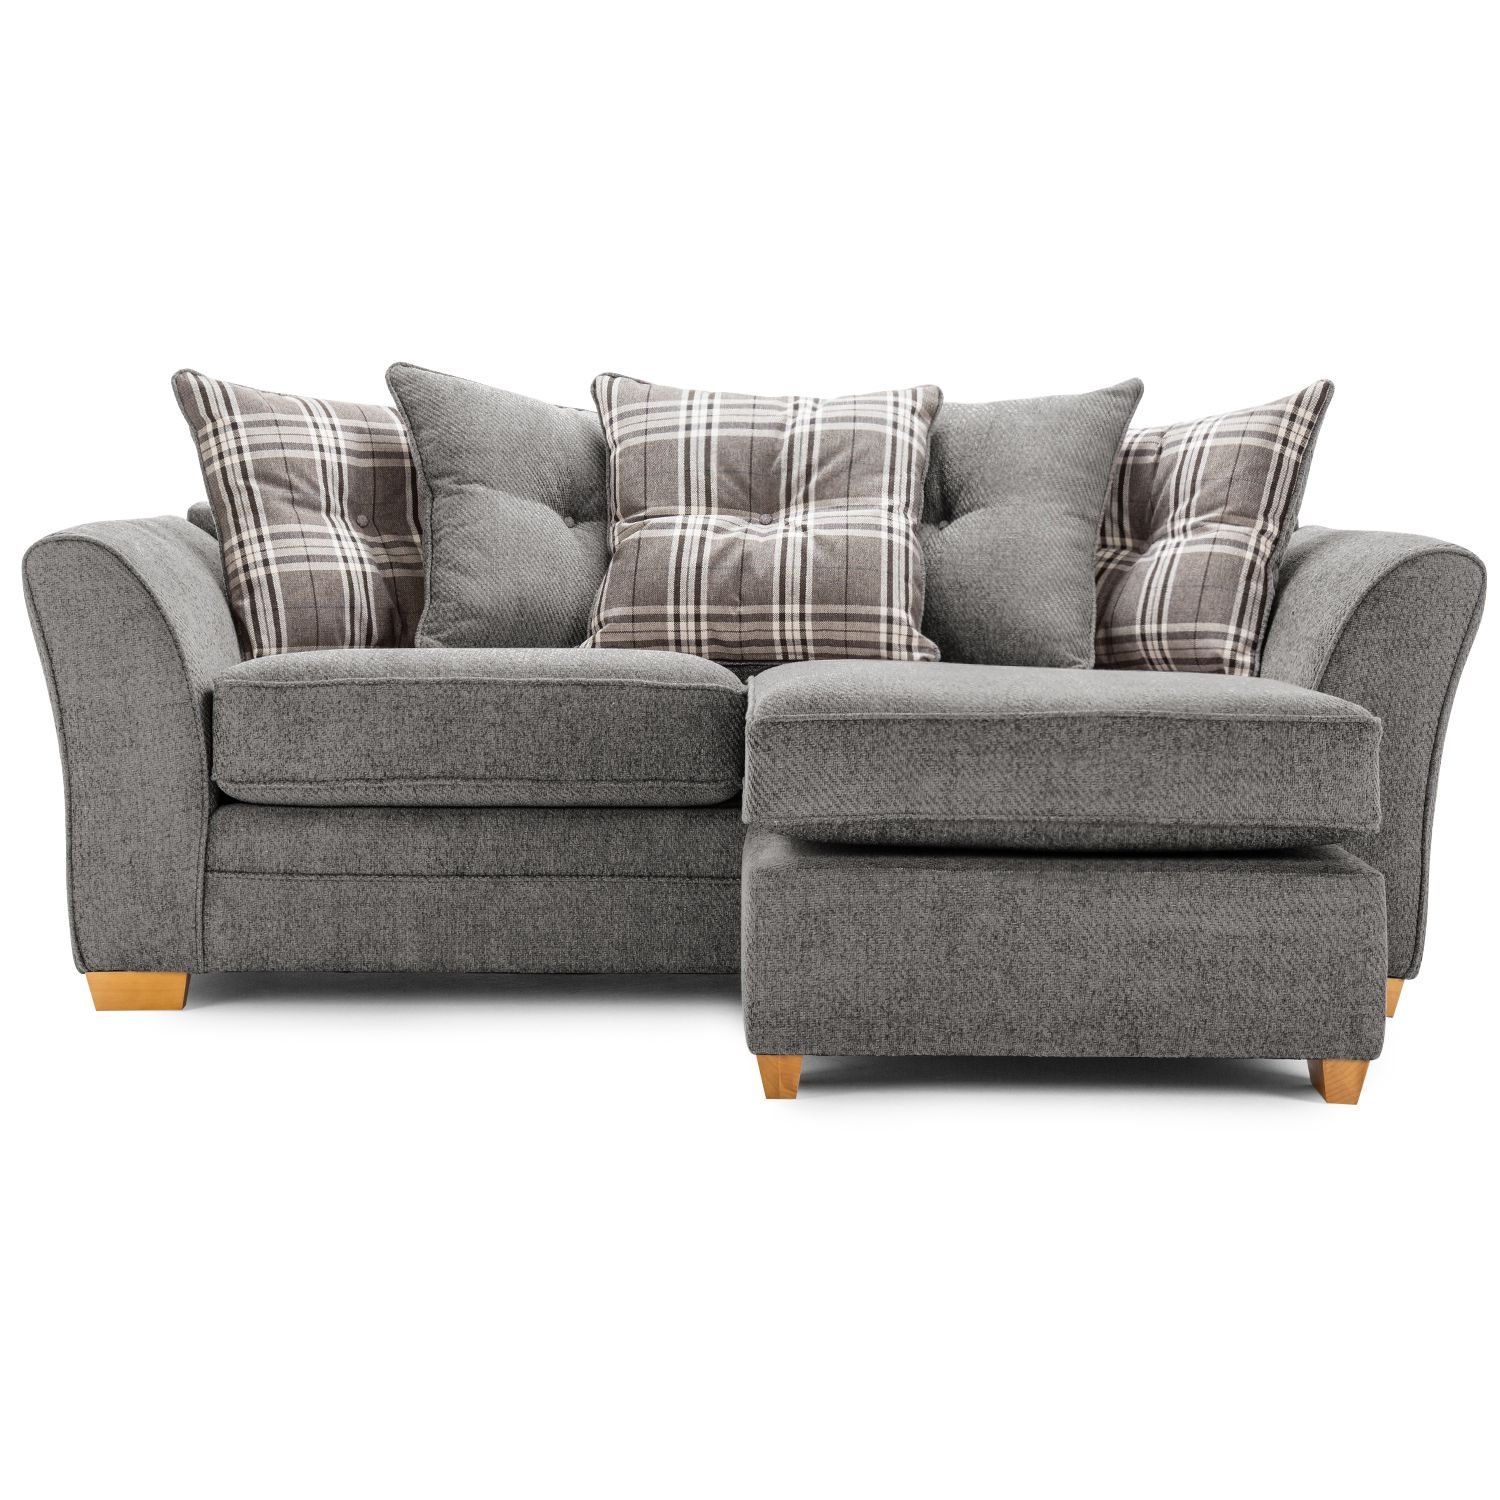 Pin by WorldStores on Trend: Cosy Lounge   Corner sofa ...